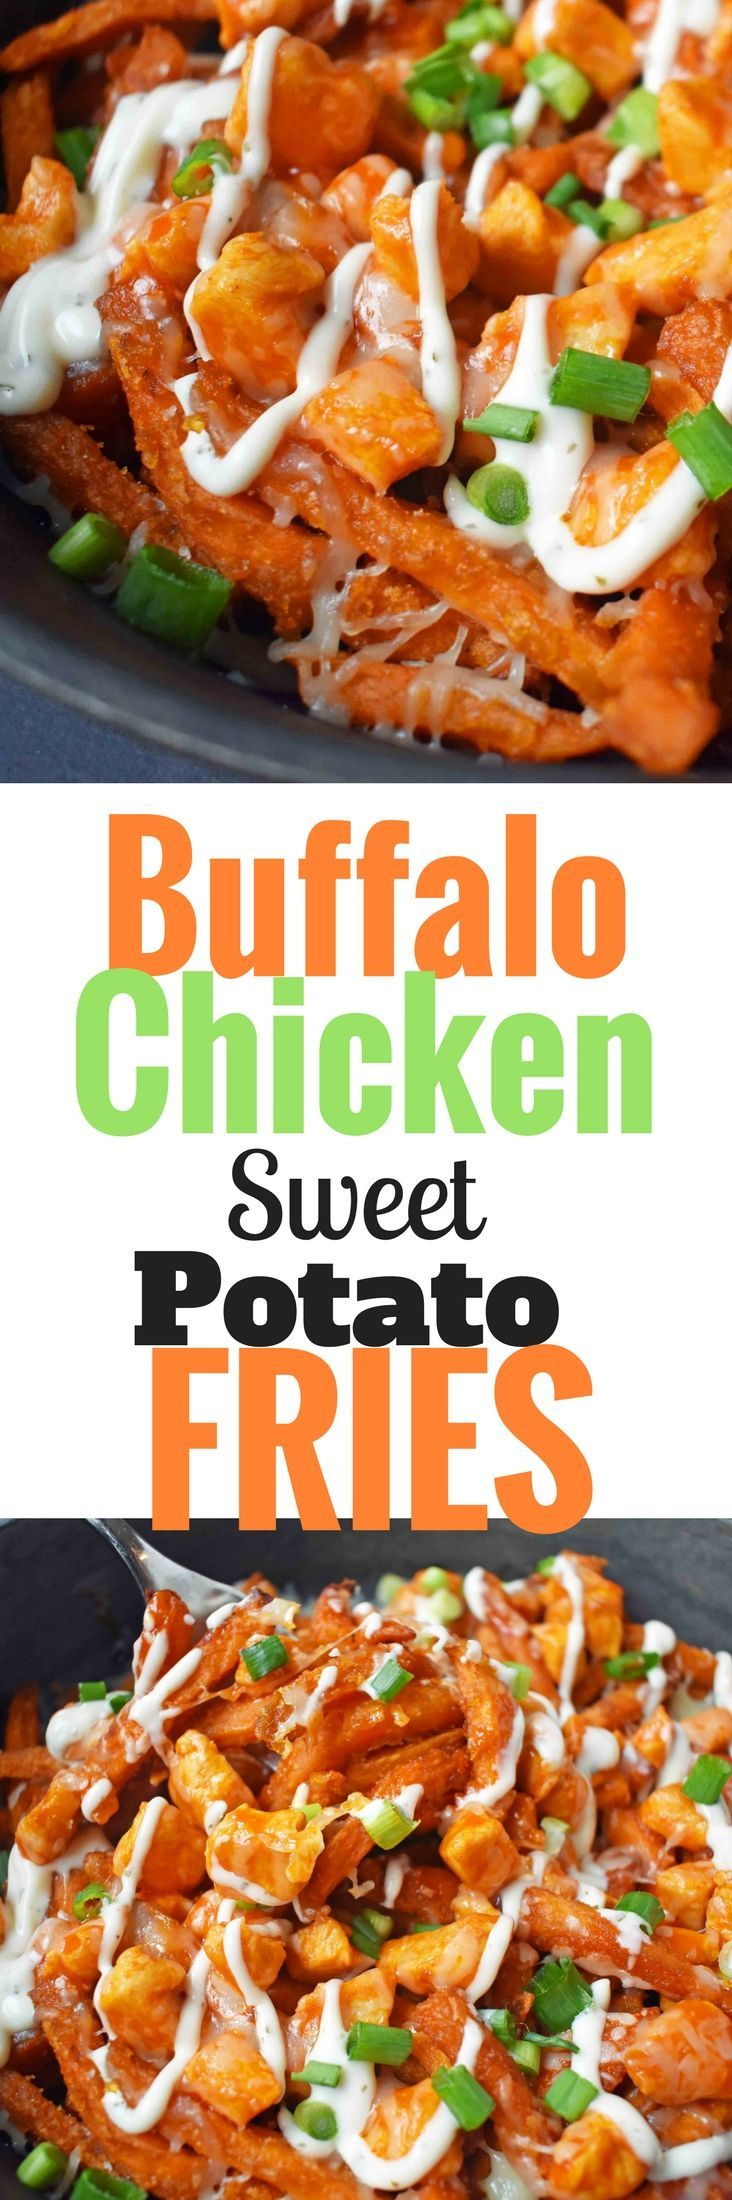 Buffalo Chicken topped Sweet Potato Fries. Crispy sweet potato fries topped with hot wing buffalo chicken, cheese, green onions, and ranch dressing. http://www.modernhoney.com